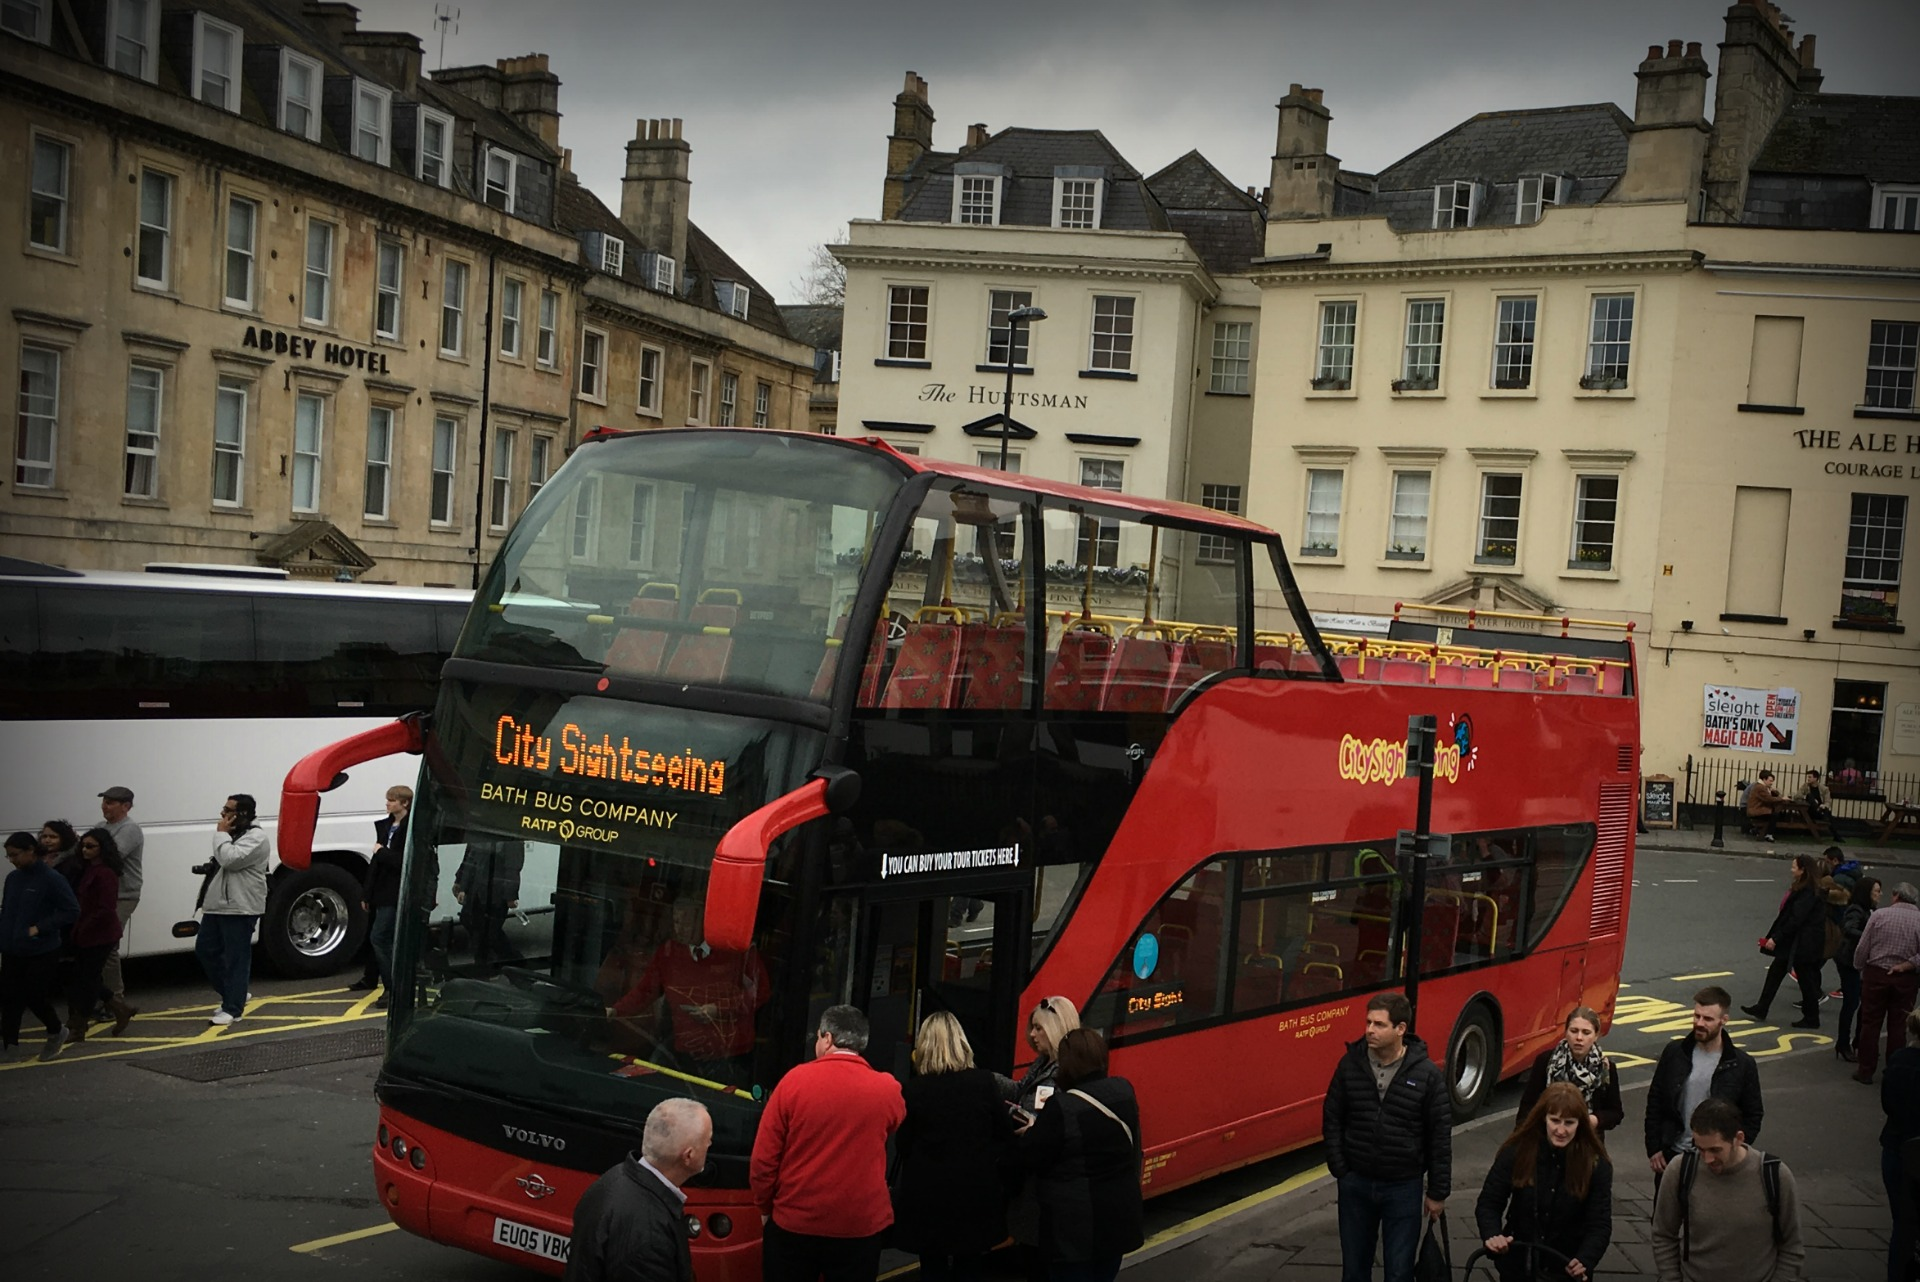 City Sightseeing hop-on hop-off bus in Bath England tours